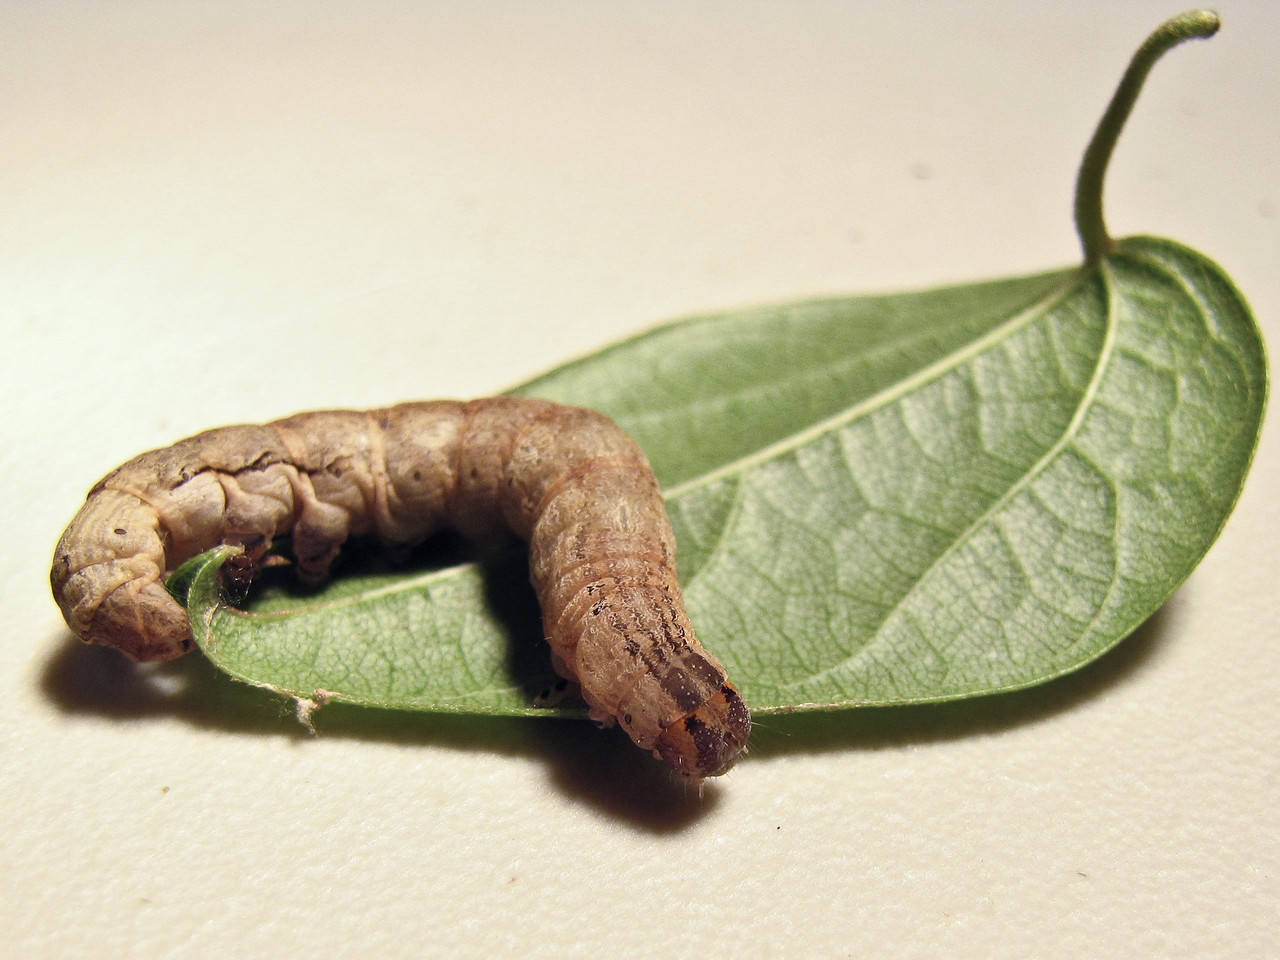 Caterpillar (larva) of Oraesia excavata, a fruit-piercing moth, on Cocculus orbiculatus (Olinda, Maui, Hawaii) (15 March 2010). Photo by Forest & Kim Starr; see  http://www.hear.org/starr/imageusepolicy.htm for image use policy.